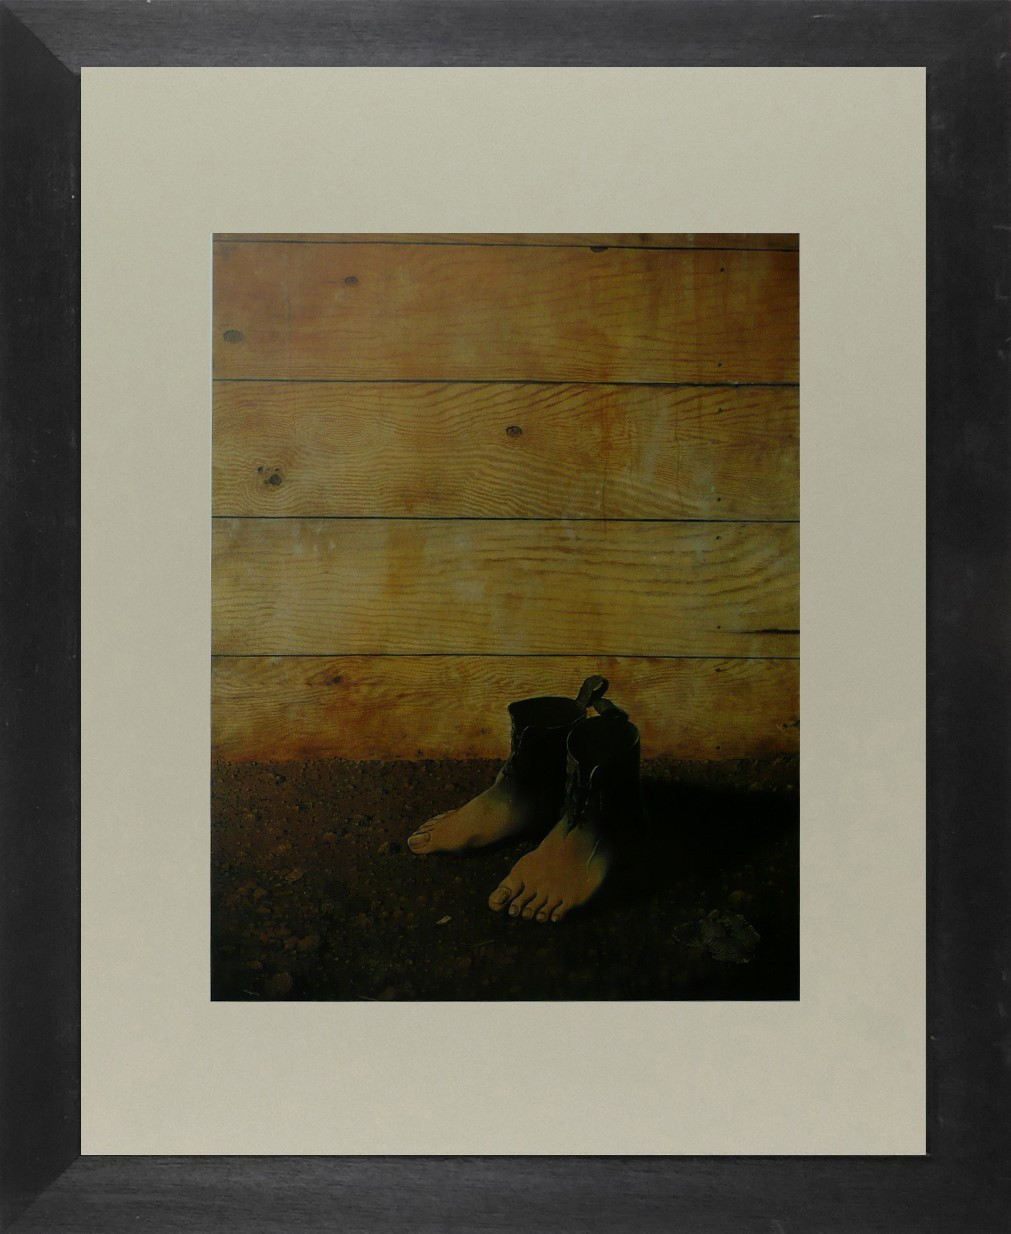 The Red Model - (Feet in front of boarding) - (1) - Ren Magritte - Framed Pictur